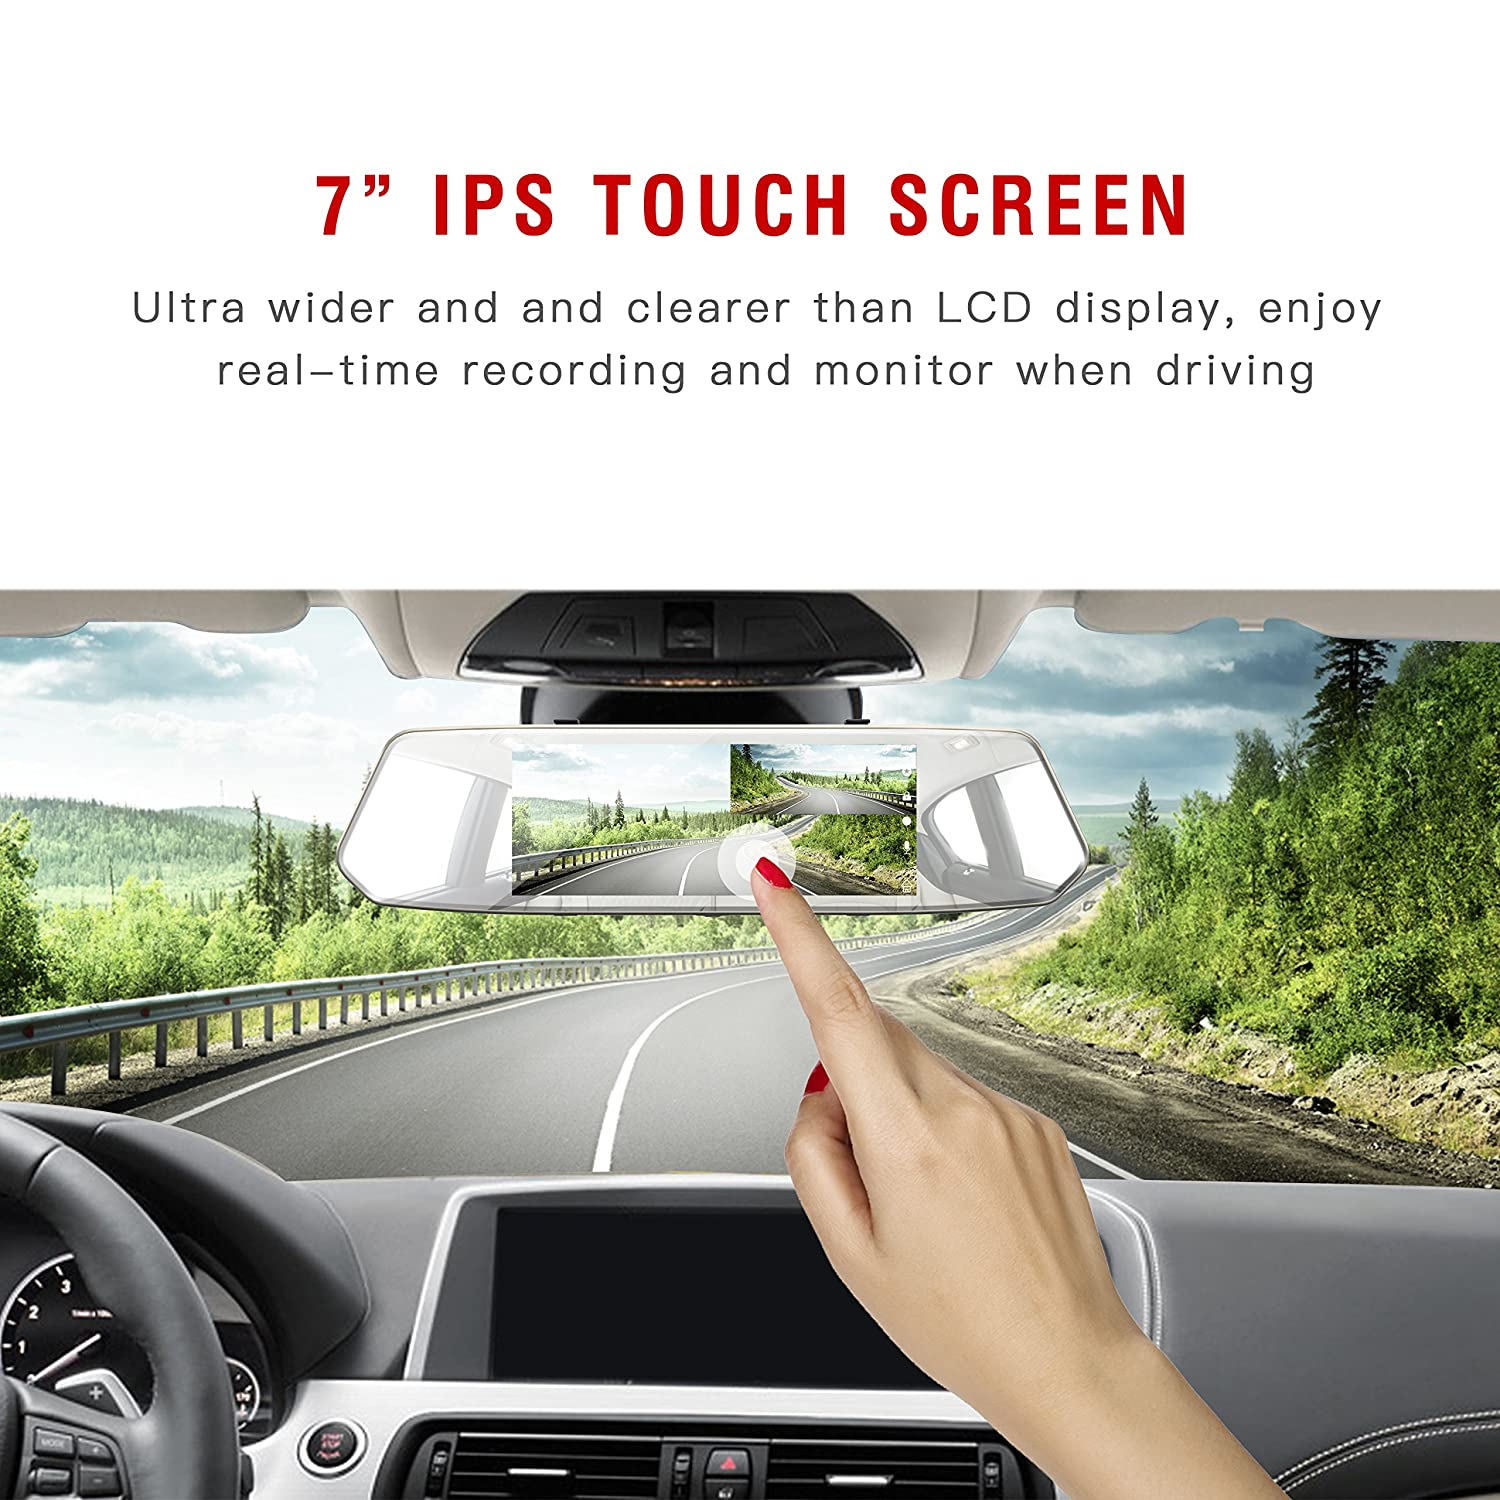 Toguard Backup Camera 7 Mirror Dash Cam Touch Screen Pin Wiring Diagram Jpg On Pinterest 1080p Rearview Front And Rear Dual Lens With Waterproof Reversing Car Electronics